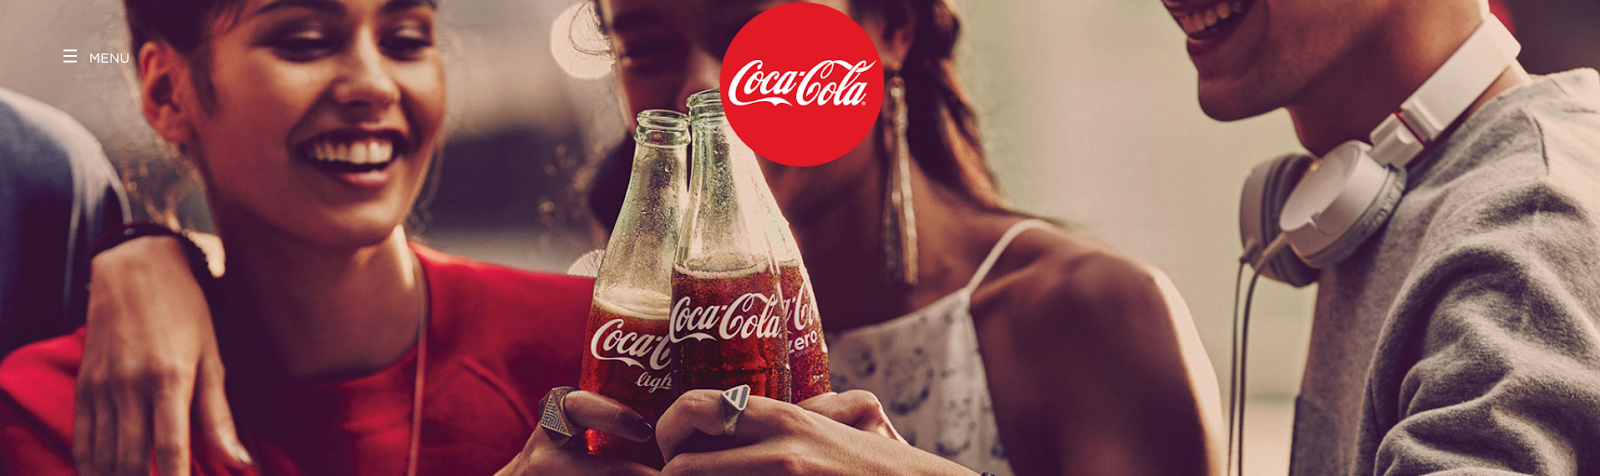 Coca Cola homepage screenshot